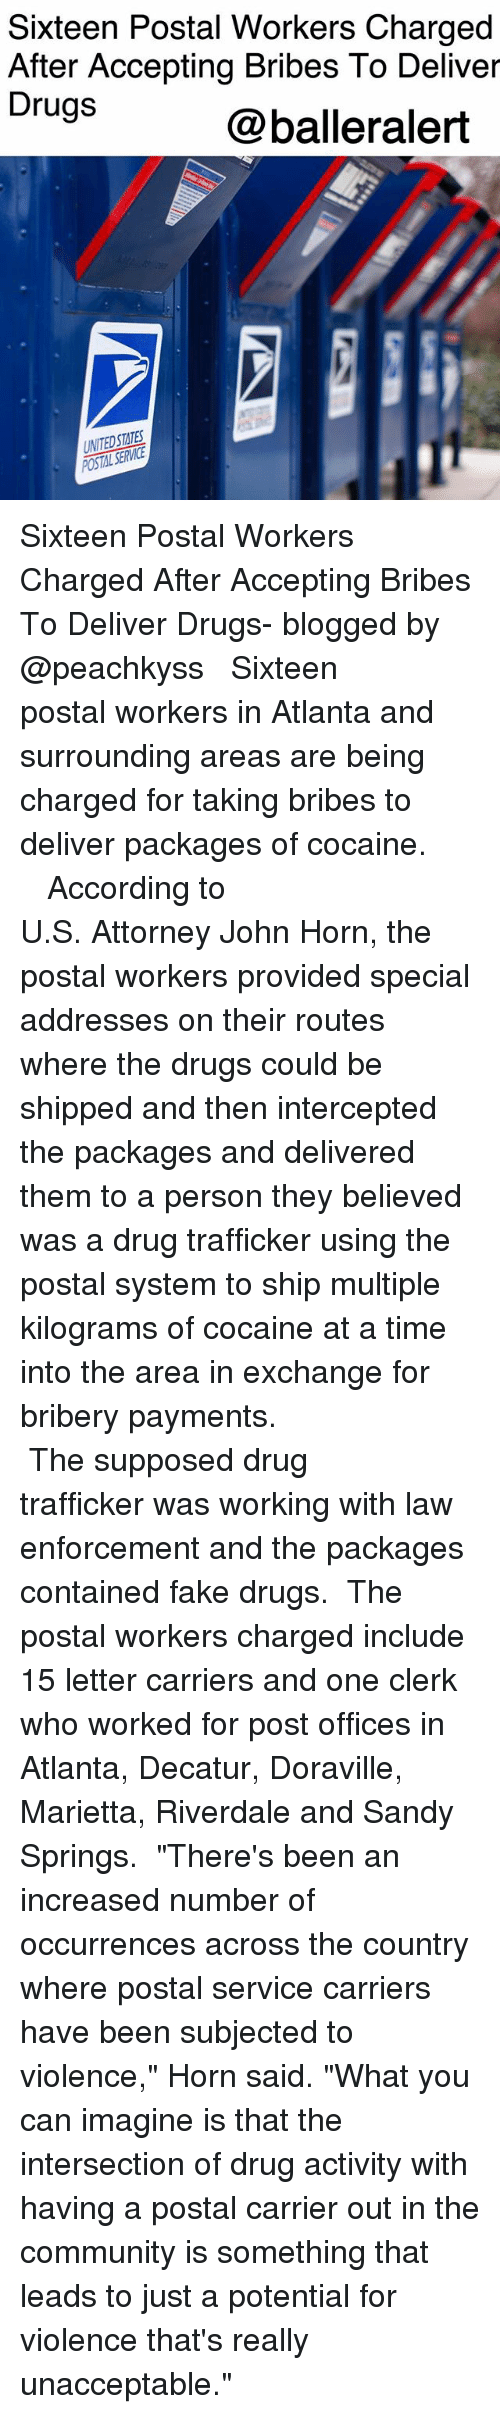 "personable: Sixteen Postal Workers Charged  After Accepting Bribes To Deliver  Drugs  @balleralert  UNITEDSTATES Sixteen Postal Workers Charged After Accepting Bribes To Deliver Drugs- blogged by @peachkyss ⠀⠀⠀⠀⠀⠀⠀ ⠀⠀⠀⠀⠀⠀⠀ Sixteen postal workers in Atlanta and surrounding areas are being charged for taking bribes to deliver packages of cocaine. ⠀⠀⠀⠀⠀⠀⠀ ⠀⠀⠀⠀⠀⠀⠀ ⠀⠀⠀⠀⠀⠀⠀ According to U.S. Attorney John Horn, the postal workers provided special addresses on their routes where the drugs could be shipped and then intercepted the packages and delivered them to a person they believed was a drug trafficker using the postal system to ship multiple kilograms of cocaine at a time into the area in exchange for bribery payments. ⠀⠀⠀⠀⠀⠀⠀ ⠀⠀⠀⠀⠀⠀⠀ ⠀⠀⠀⠀⠀⠀⠀ The supposed drug trafficker was working with law enforcement and the packages contained fake drugs. ⠀⠀⠀⠀⠀⠀⠀ The postal workers charged include 15 letter carriers and one clerk who worked for post offices in Atlanta, Decatur, Doraville, Marietta, Riverdale and Sandy Springs. ⠀⠀⠀⠀⠀⠀⠀ ""There's been an increased number of occurrences across the country where postal service carriers have been subjected to violence,"" Horn said. ""What you can imagine is that the intersection of drug activity with having a postal carrier out in the community is something that leads to just a potential for violence that's really unacceptable."""